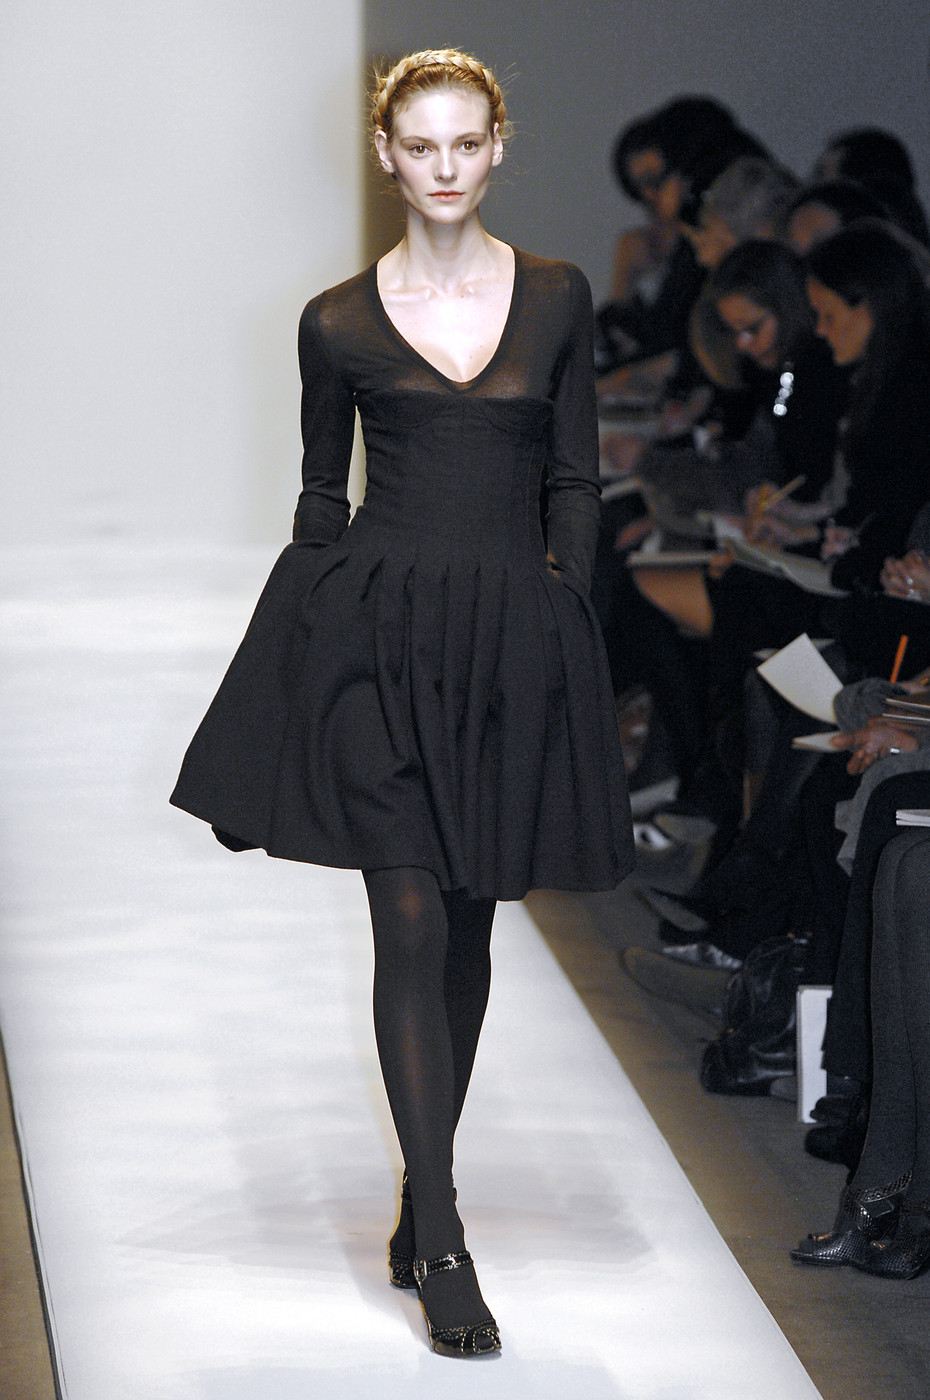 via fashioned by love | bottega veneta fall/winter 2007